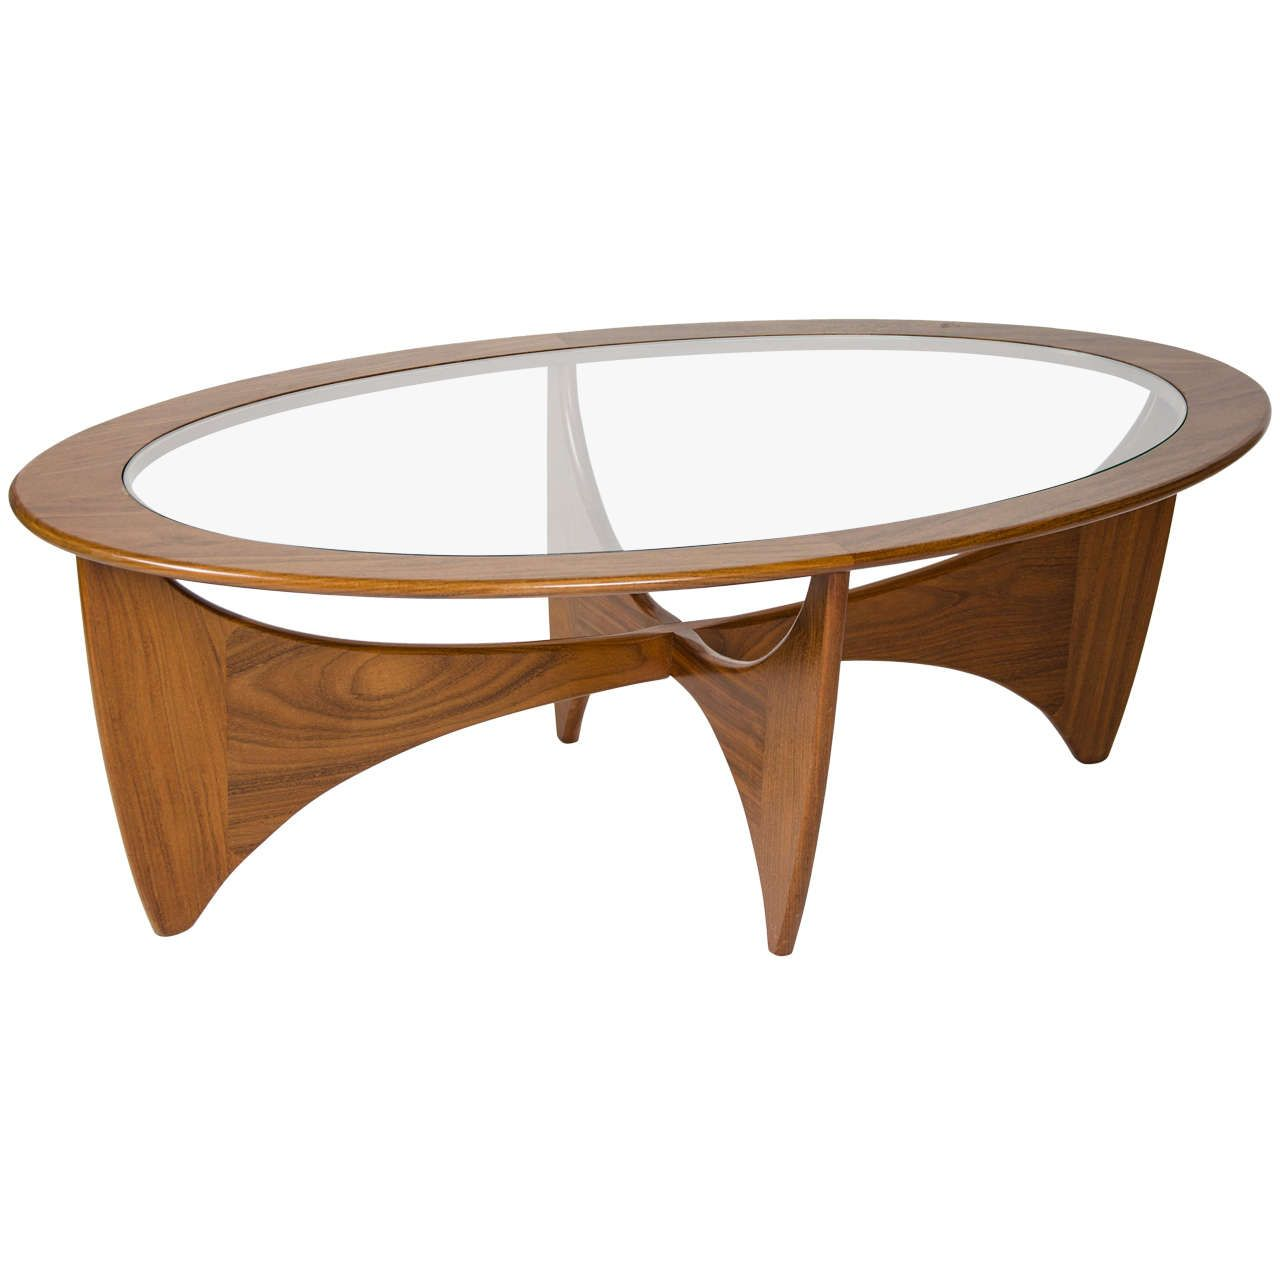 Teak And Glass Coffee Table 1stdibs Com Antique Coffee Tables Coffee Table Glass Coffee Table [ 1280 x 1280 Pixel ]